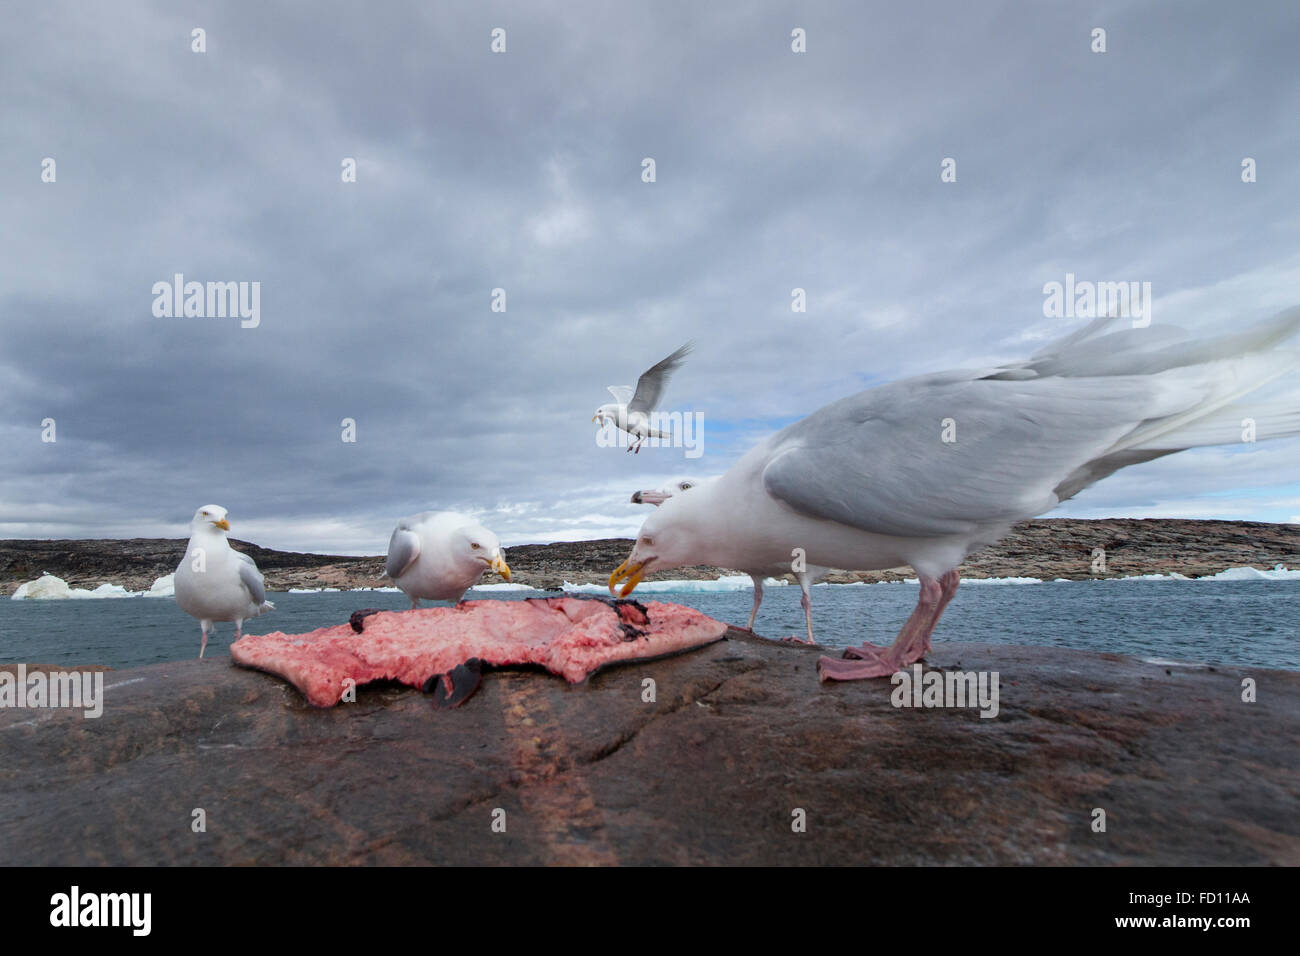 Canada, Nunavut Territory, Repulse Bay, Glaucous-wing Seagull (Larus glaucescens) feeding on remains of Bearded - Stock Image